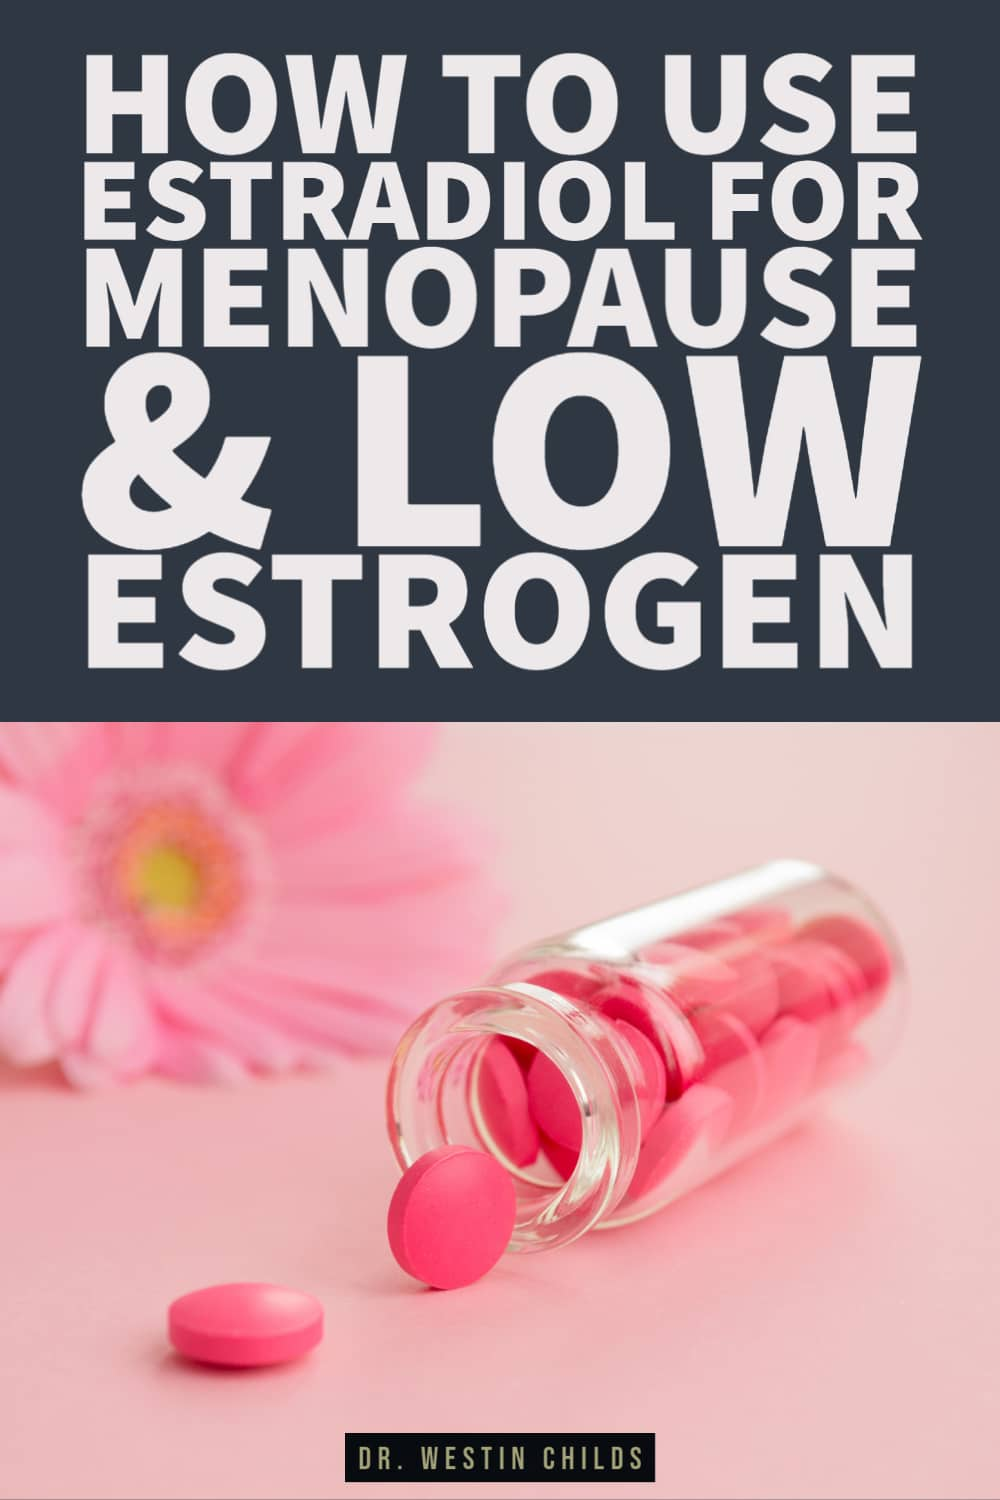 how to use estradiol for menopause and low estrogen